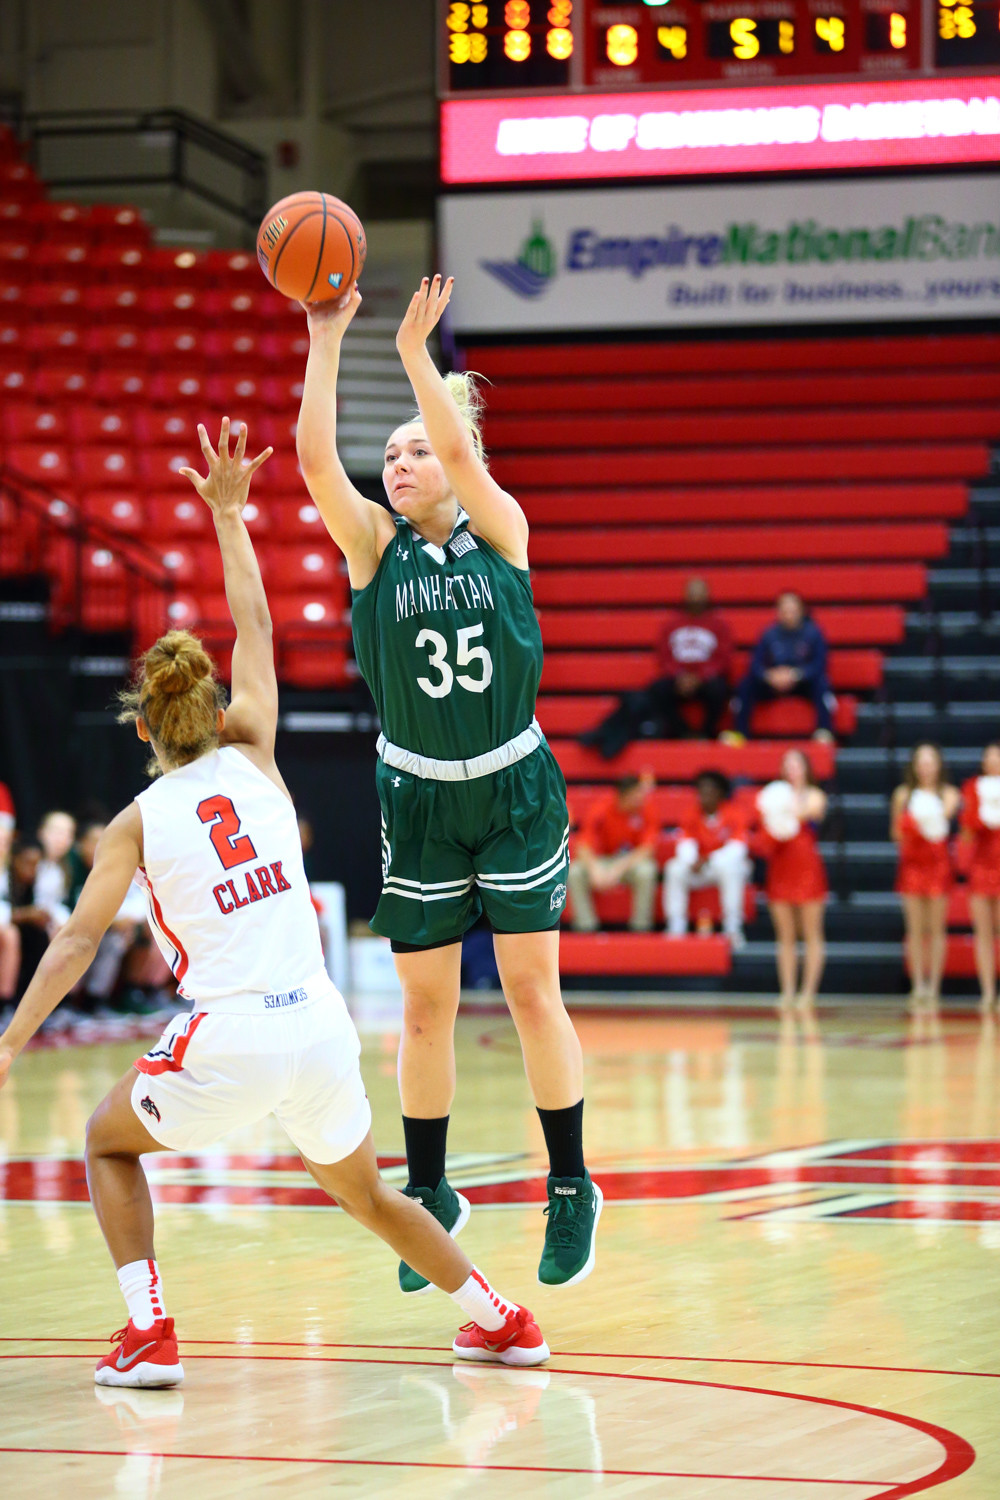 Manhattan senior Kayla Grimme turned in yet another solid outing with a game-high 15 points in the Jaspers' lopsided victory over LIU Brooklyn.